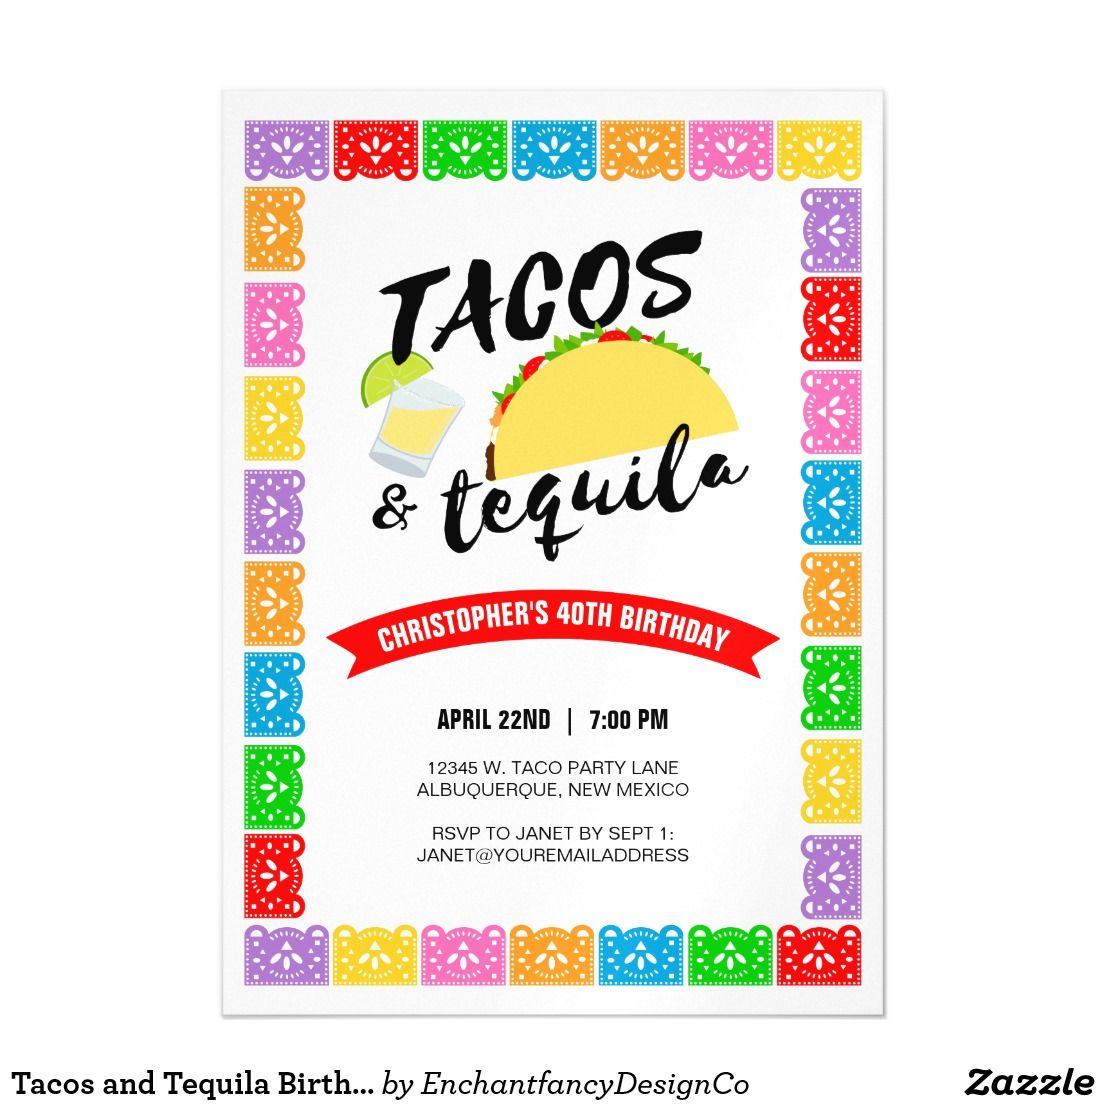 Tacos and Tequila Birthday Party Magnetic Card Add a shot of fun